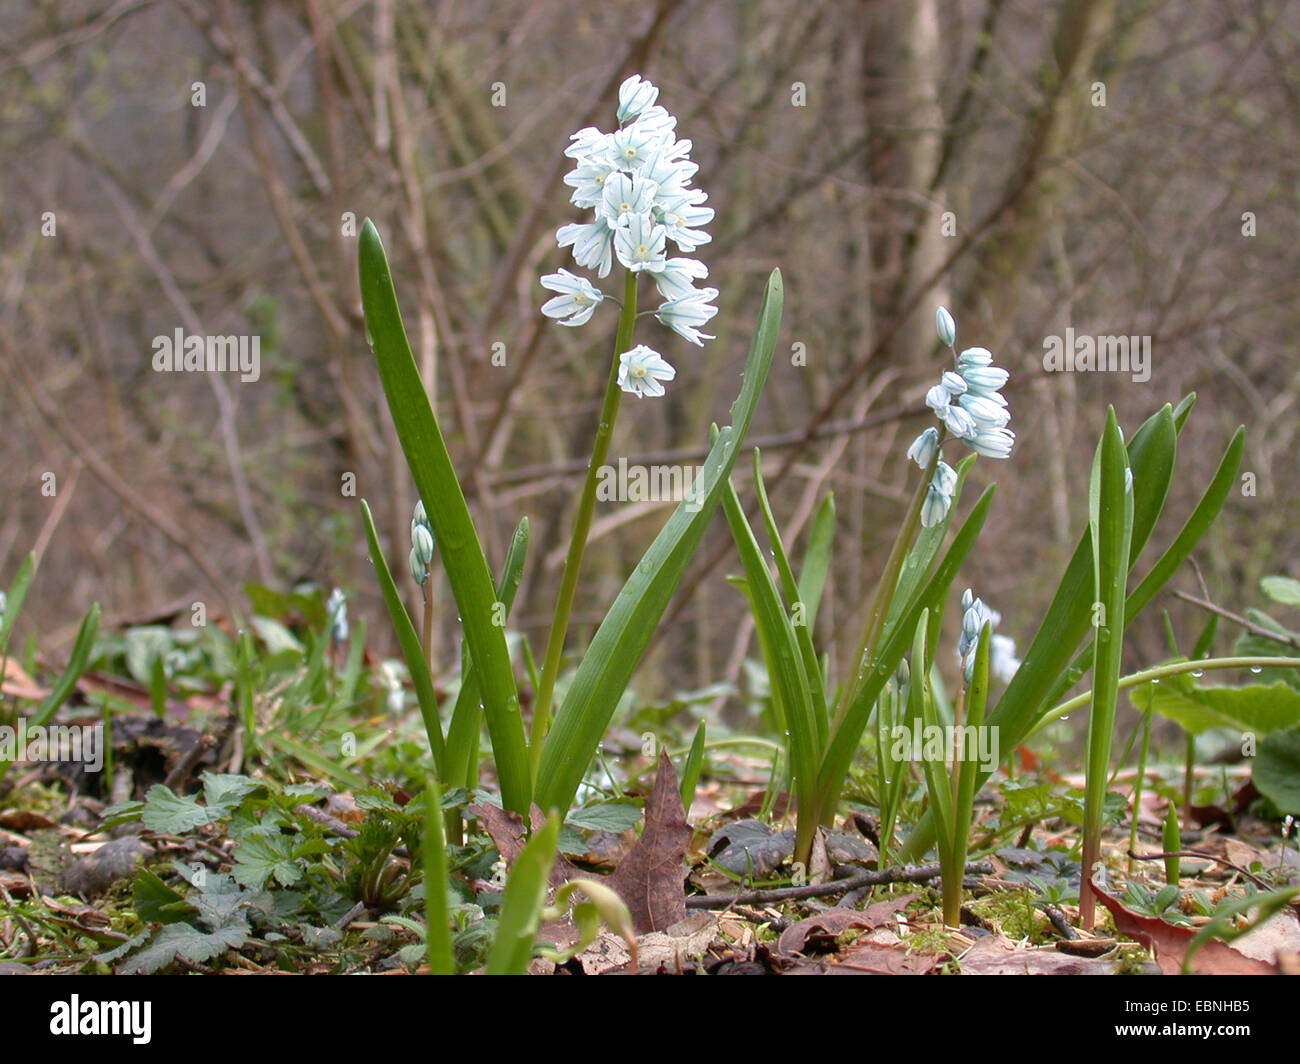 Puschkinia (Puschkinia scilloides), blooming Stock Photo